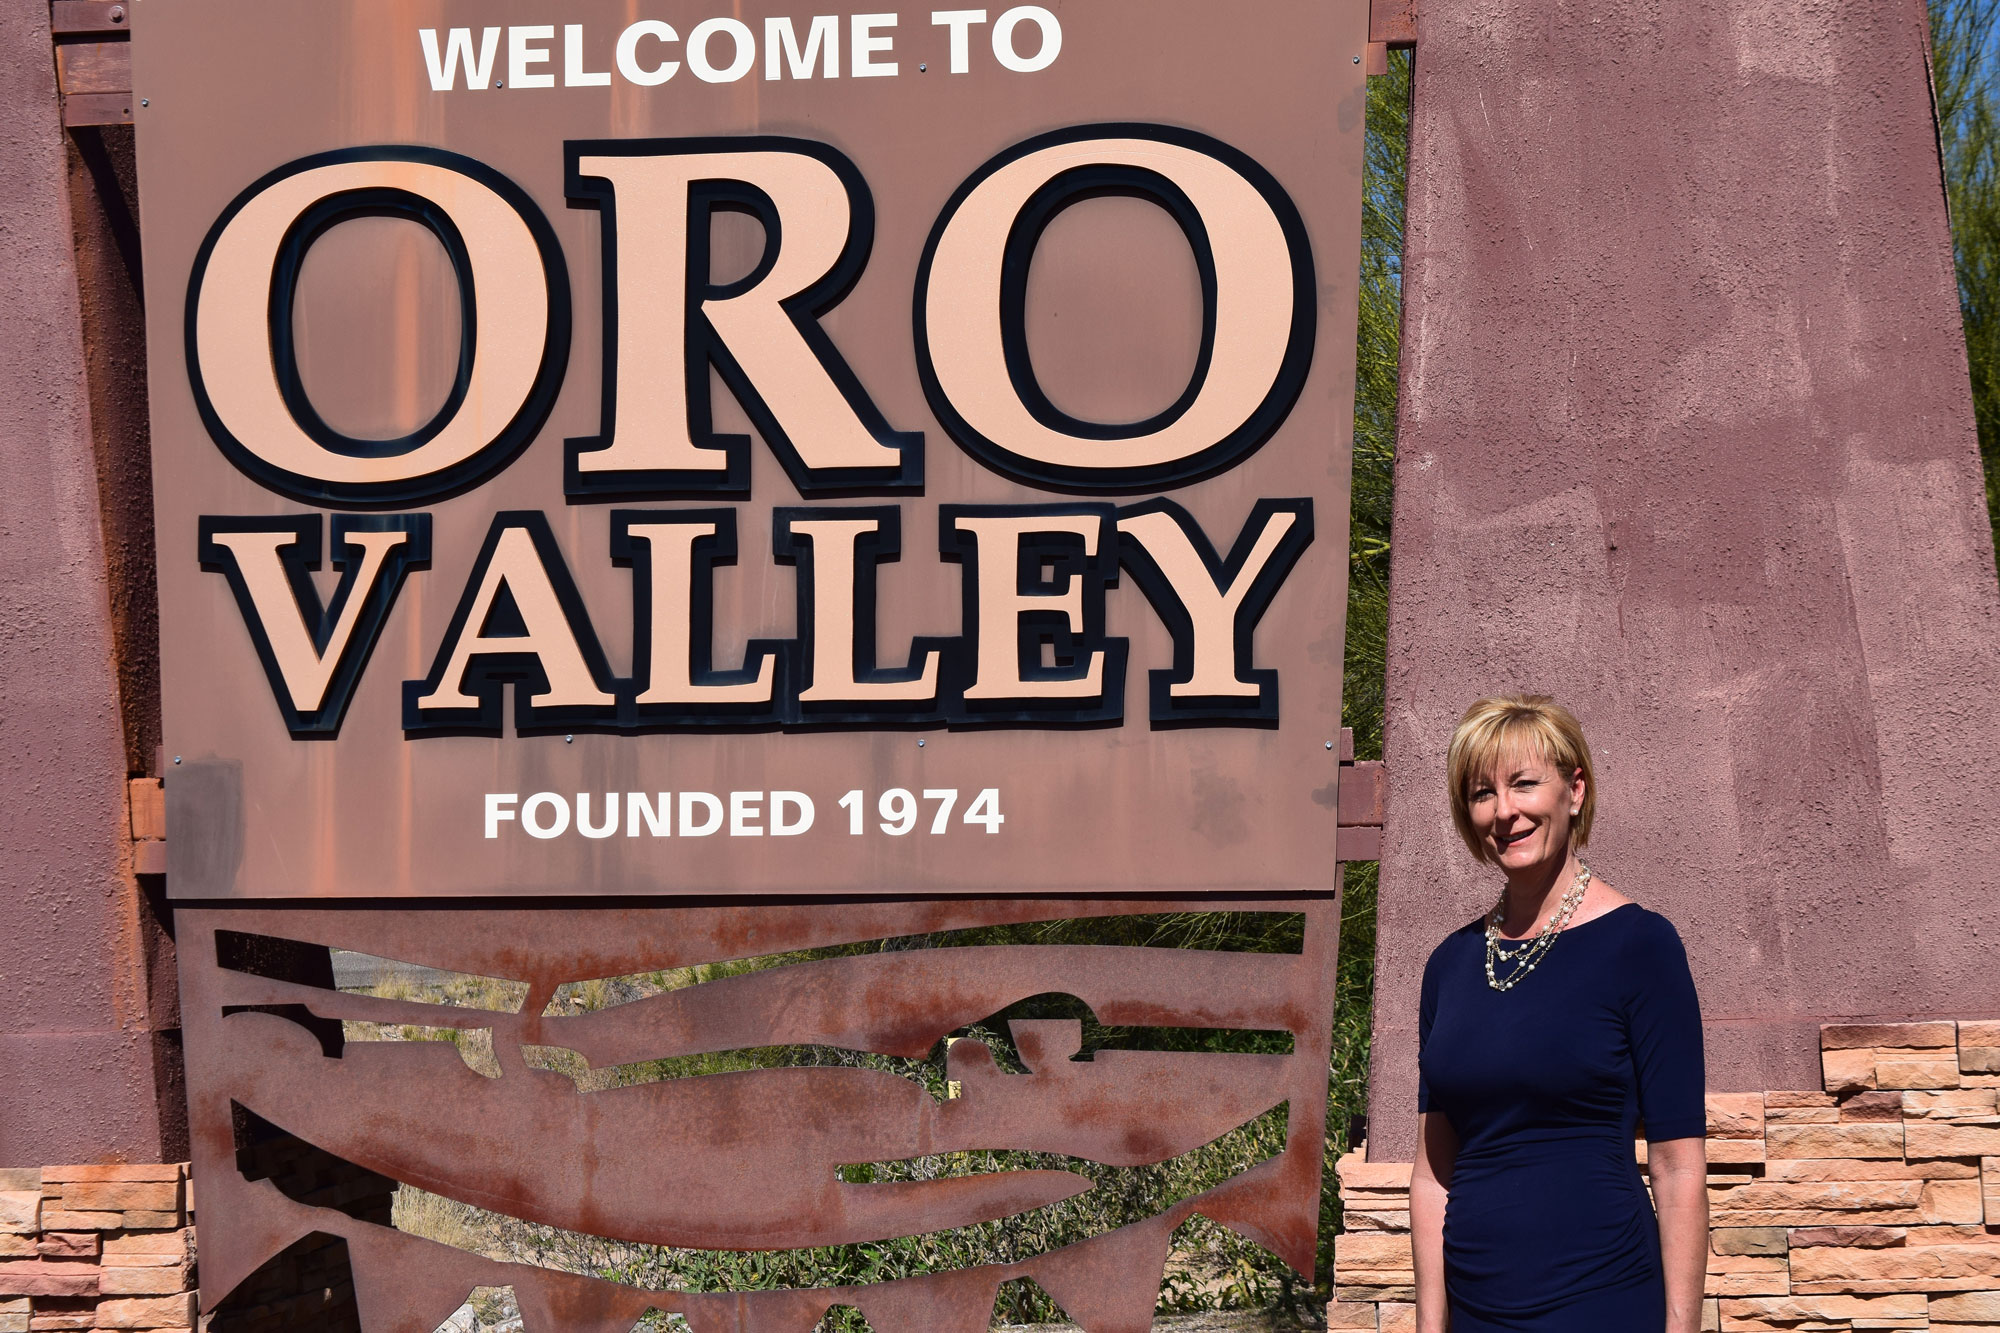 Welcome to Oro Valley with Lucy Barraza, Real Estate Agent in Tucson, Arizona